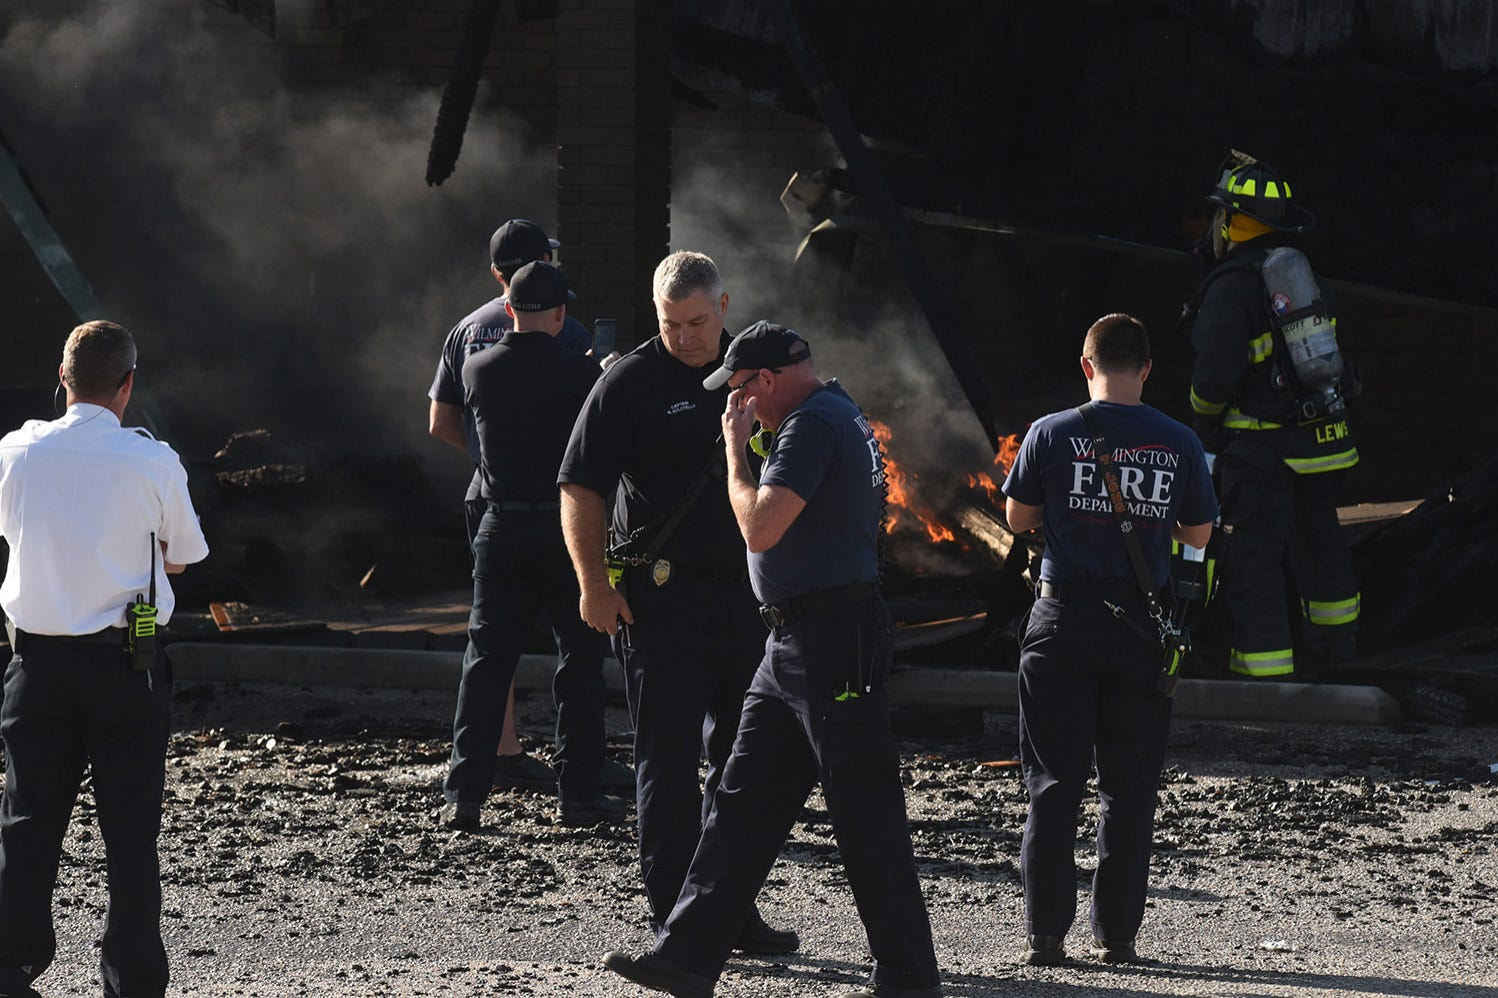 Wilmington Fire Department crews continue to look after the fire at Everybody's Supermarket, along Greenfield St. Thursday May 3, 2018 in Wilmington, N.C. The fire destroyed Village Plaza Shopping Center that included stores like Spiro's Breakfast and Lunch House and Quail's Quality Cuts. [KEN BLEVINS/STARNEWS]